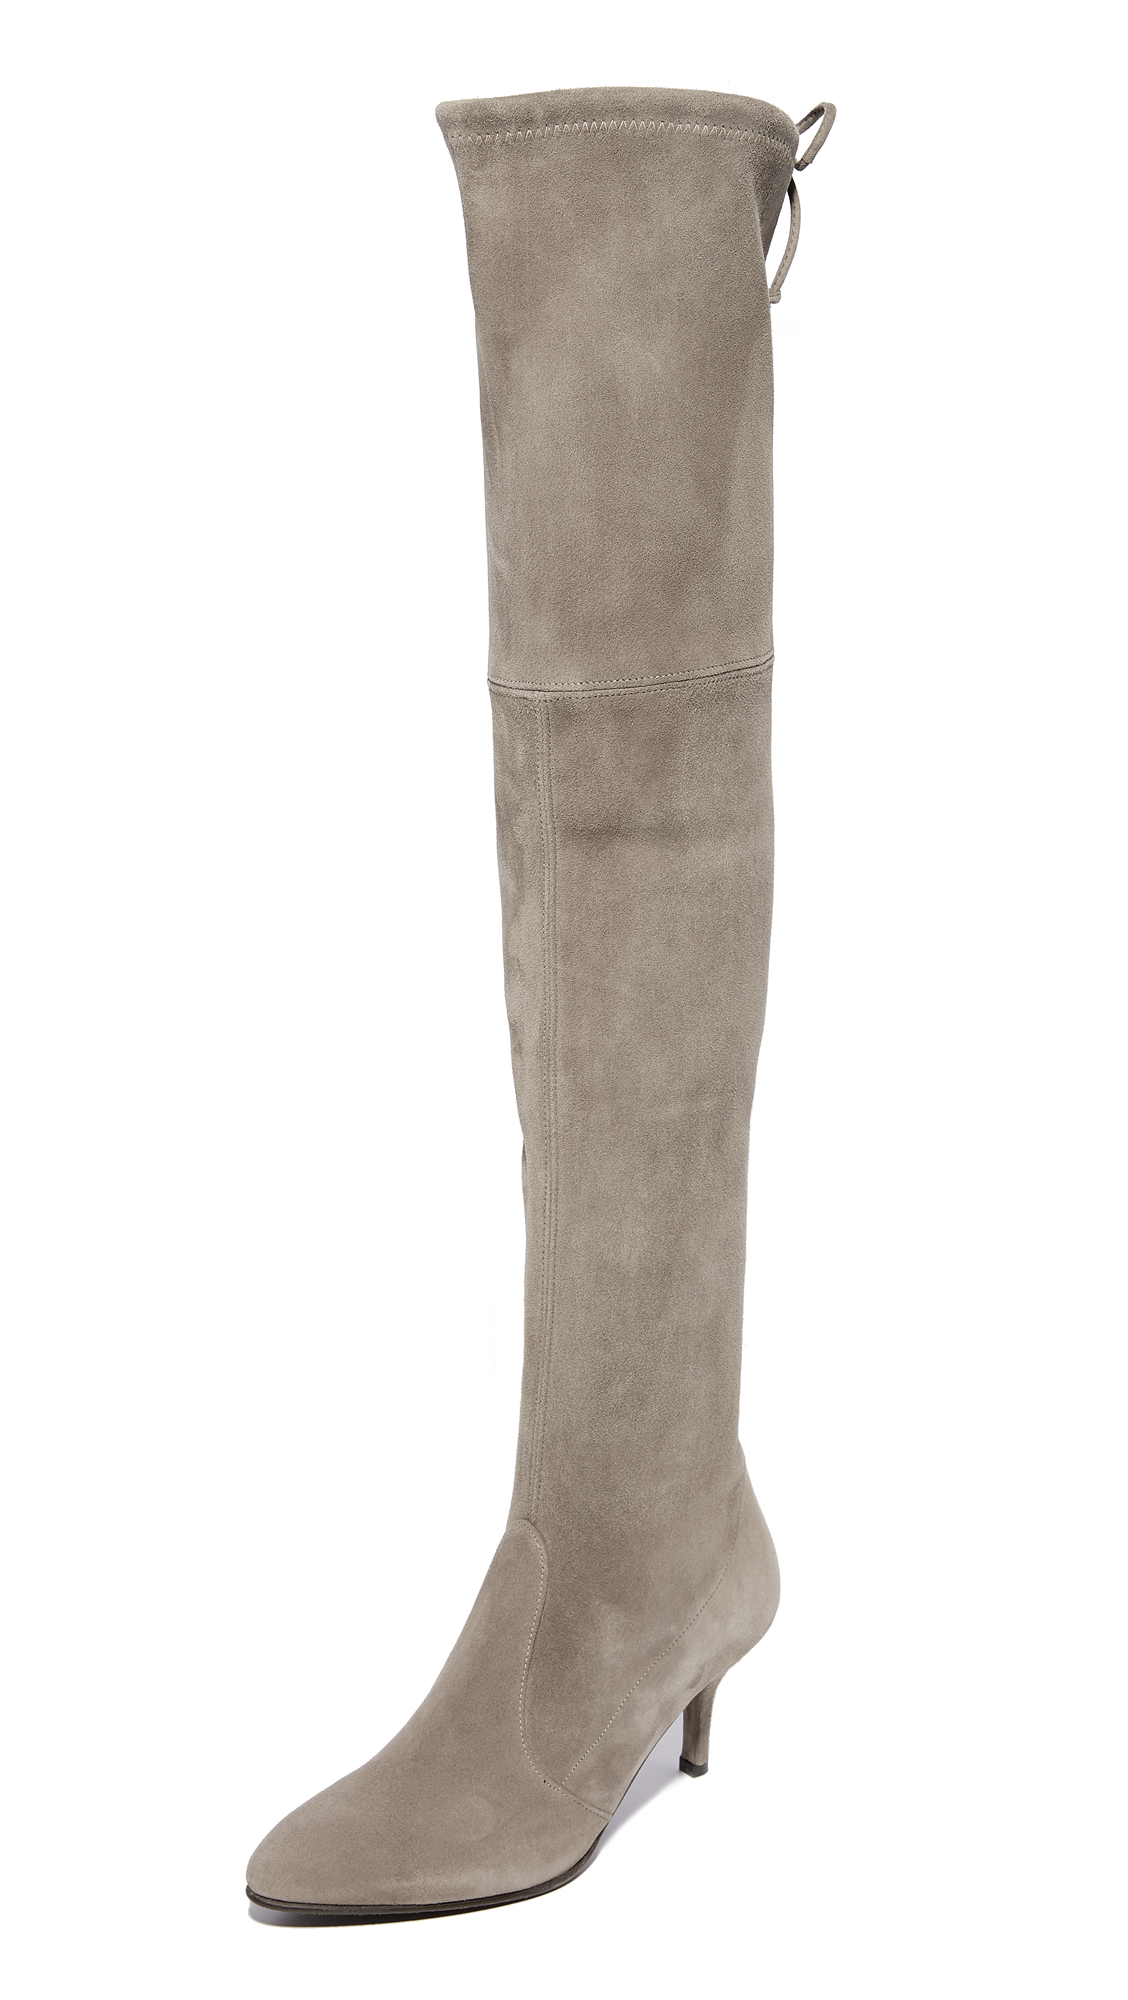 Stuart Weitzman Tie Model Thigh High Boots - Topo